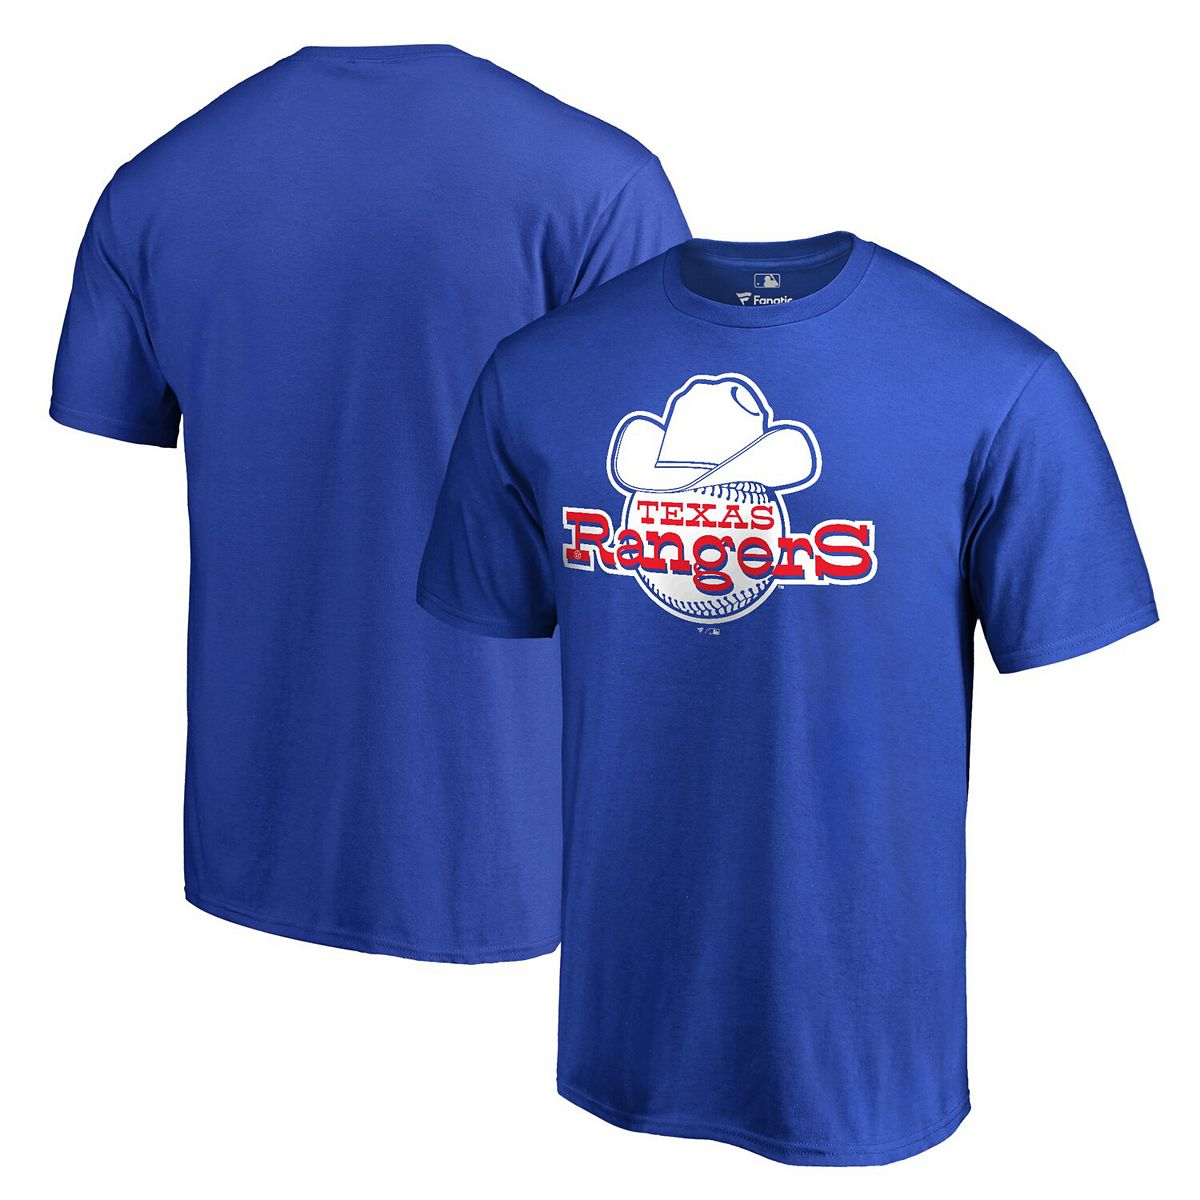 Men's Fanatics Branded Royal Texas Rangers Cooperstown Collection Forbes T-Shirt x3OkH